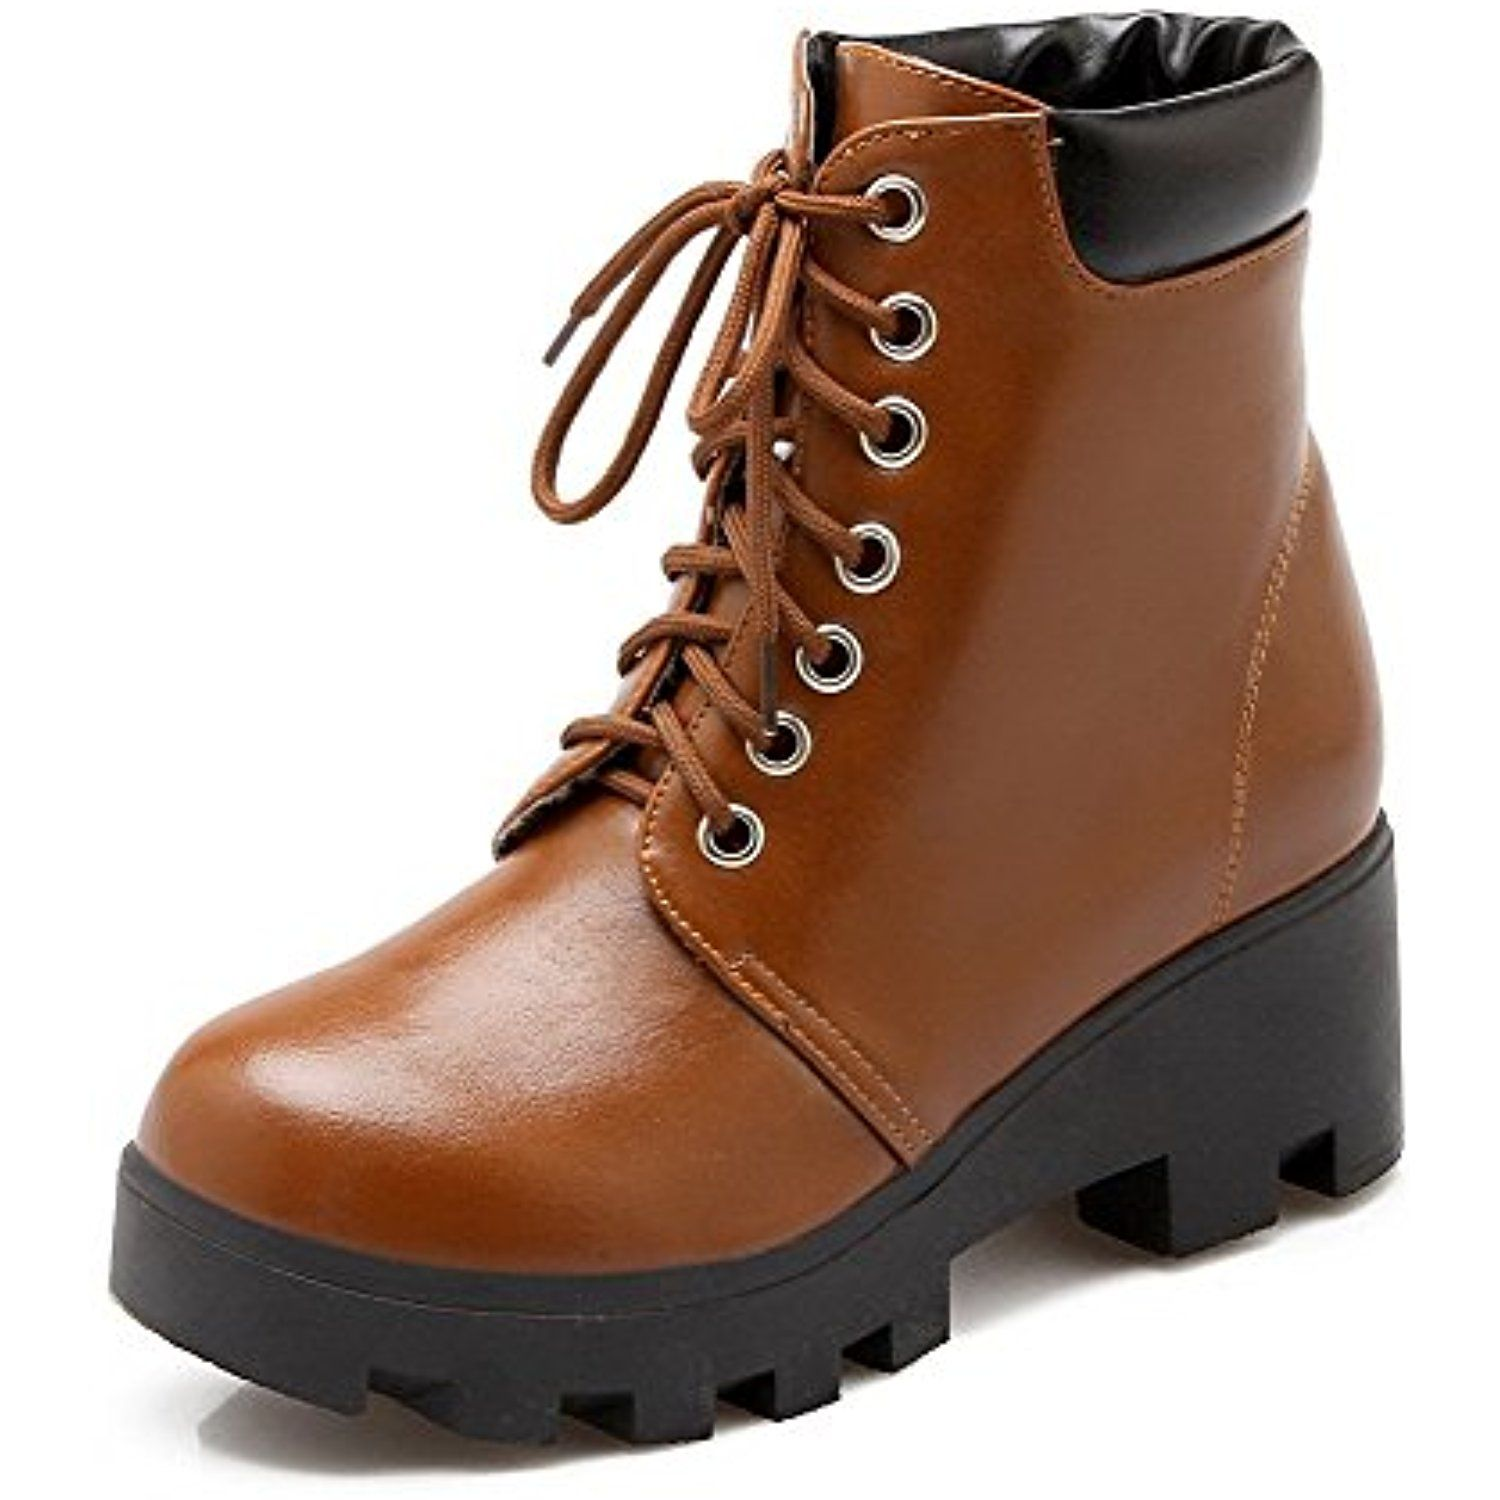 Women's Assorted Color Kitten-Heels Round Closed Toe PU Lace-up Boots